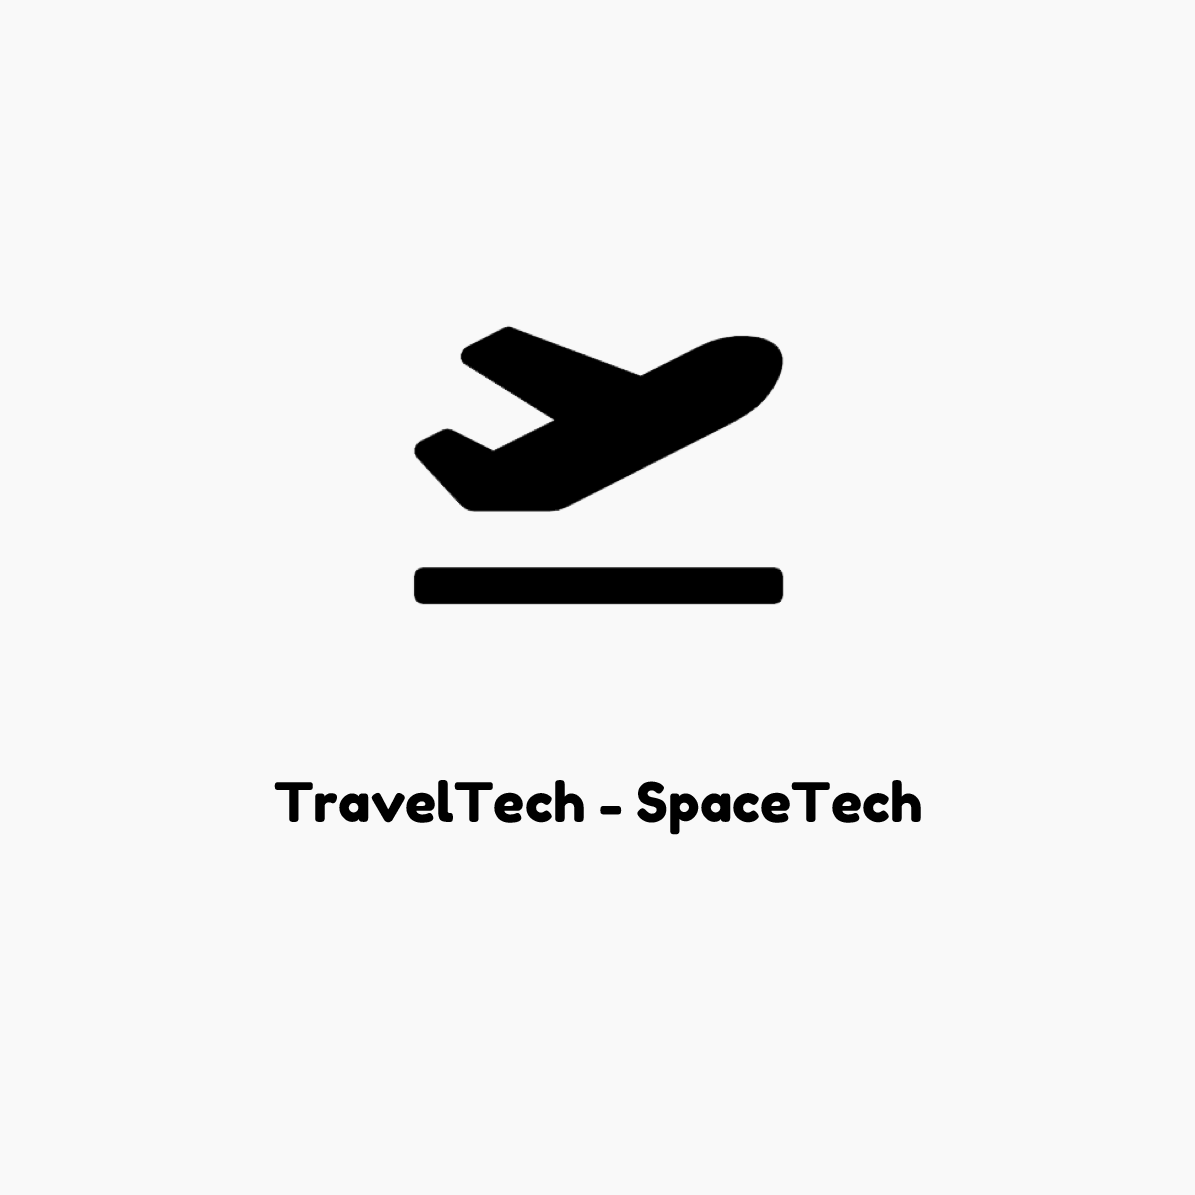 TravelTech SpaceTech